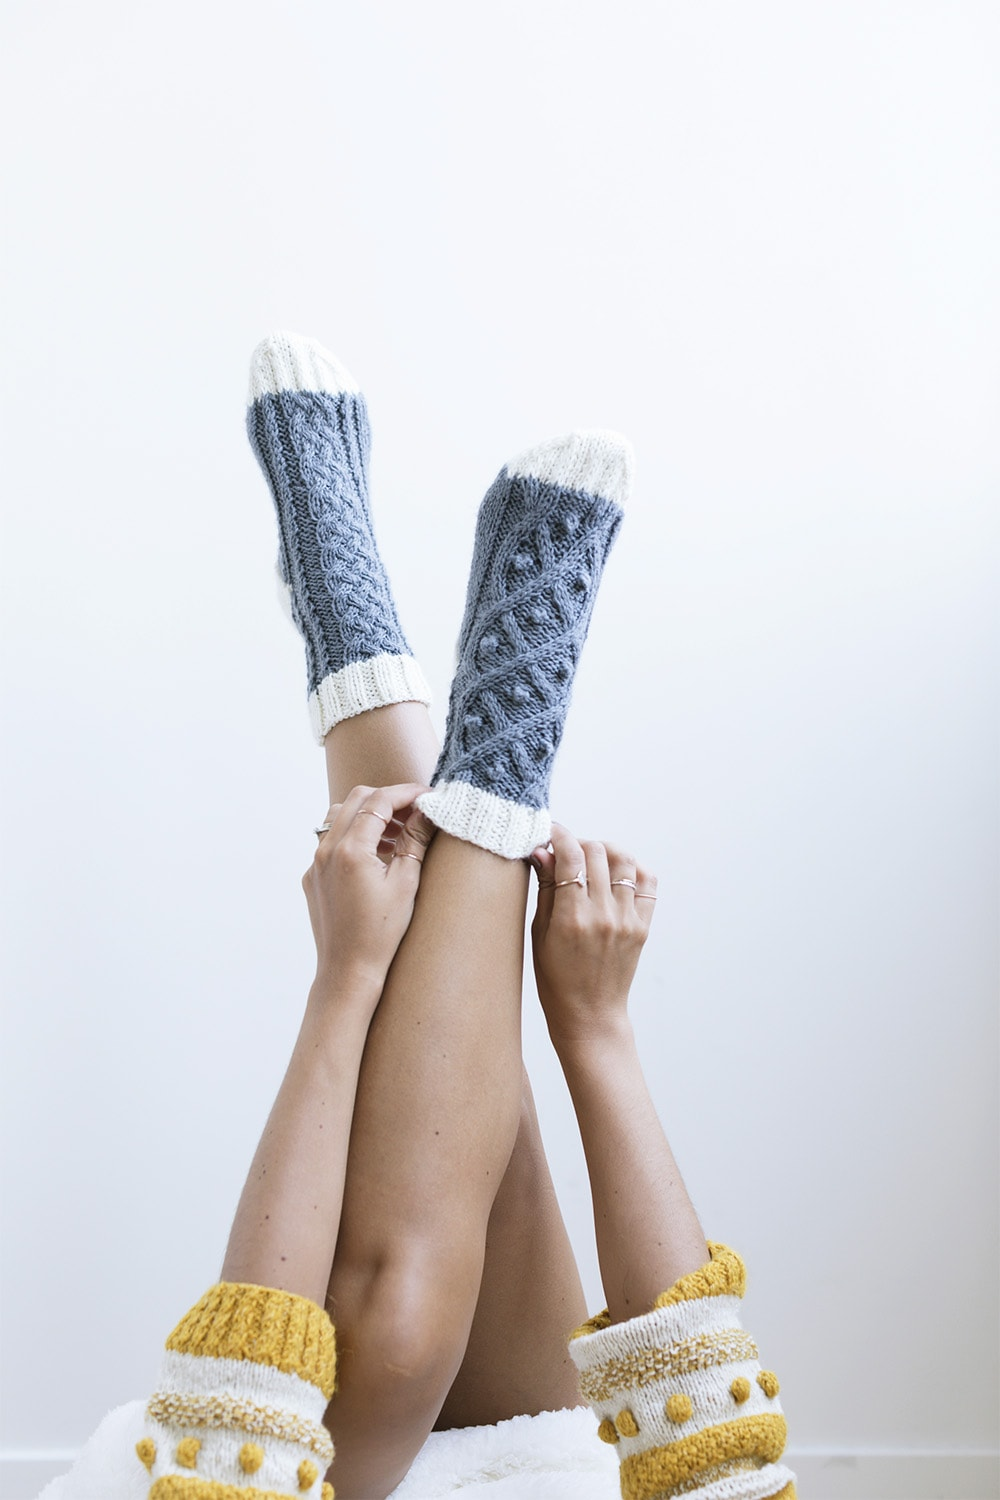 Cozy Knit Cabled Socks | Ksenia Naidyon | Crafter's Box